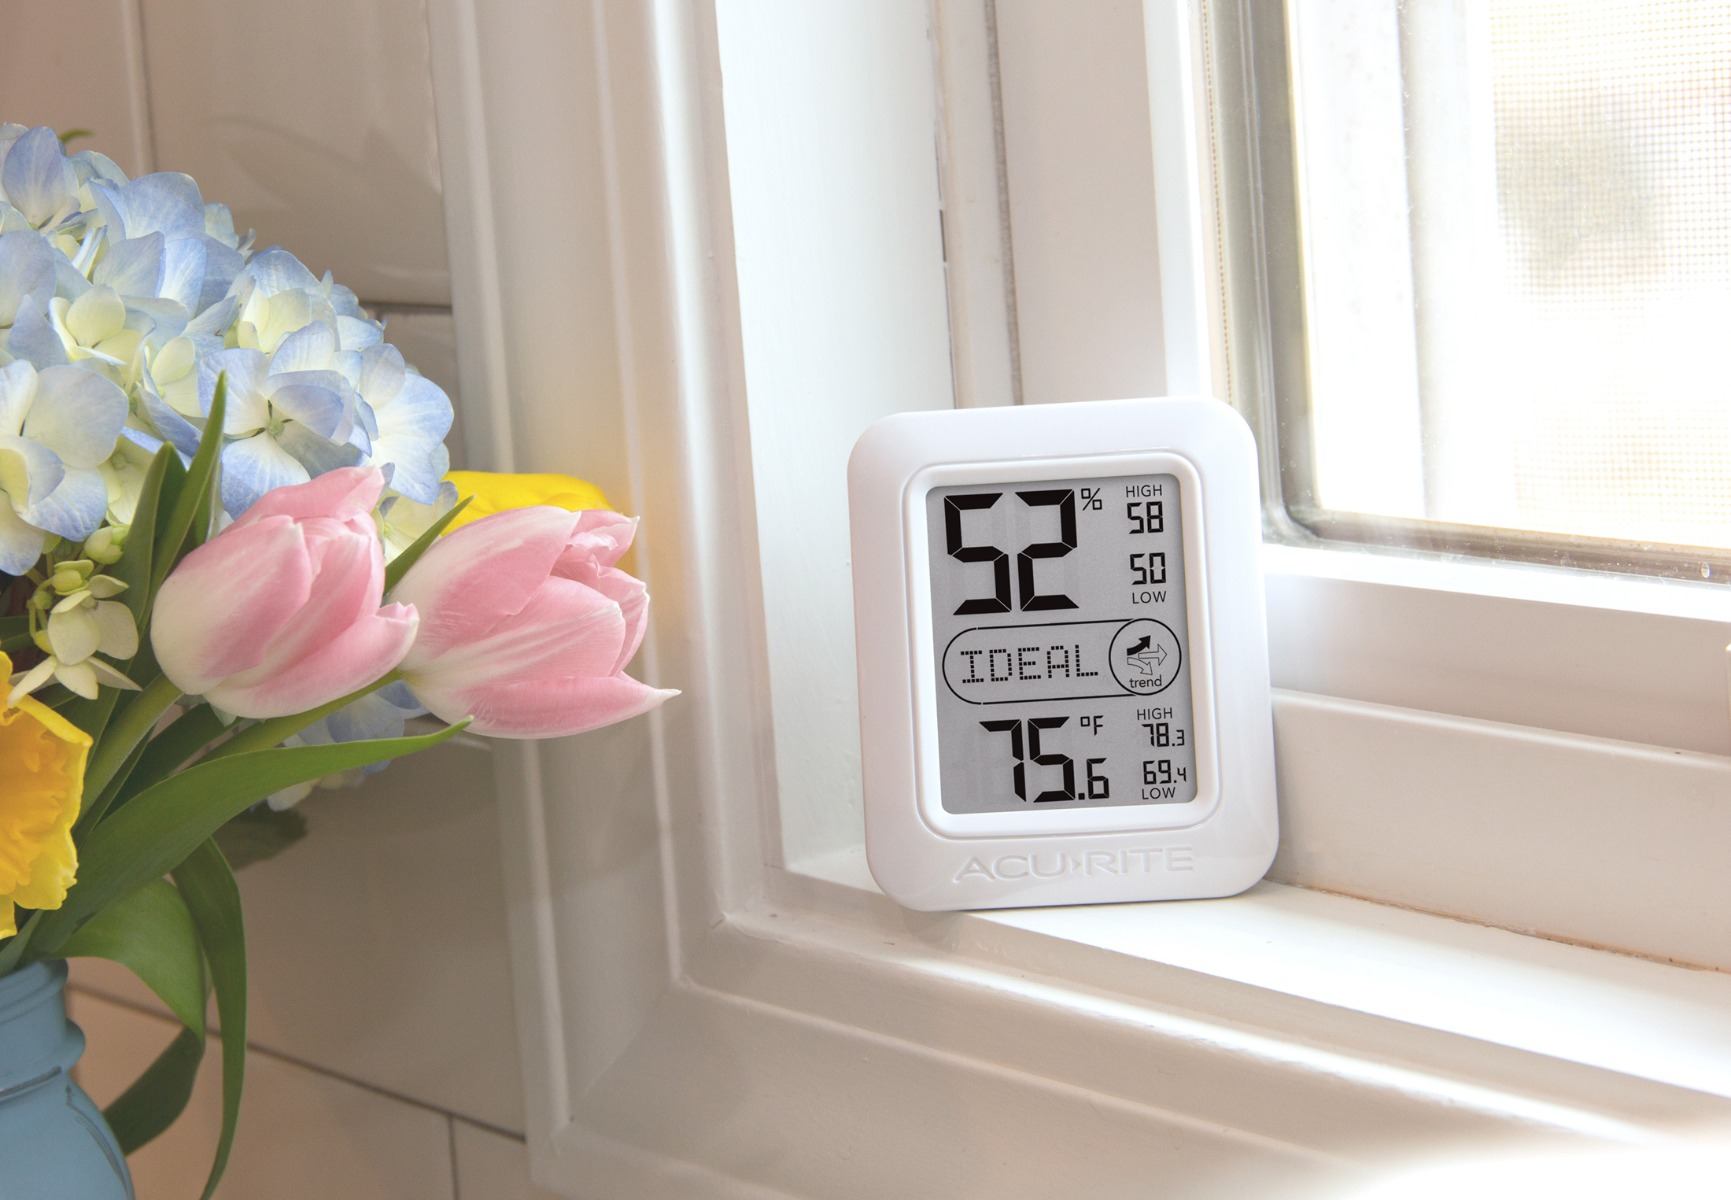 Home Monitoring System on window sill aside flower arrangement